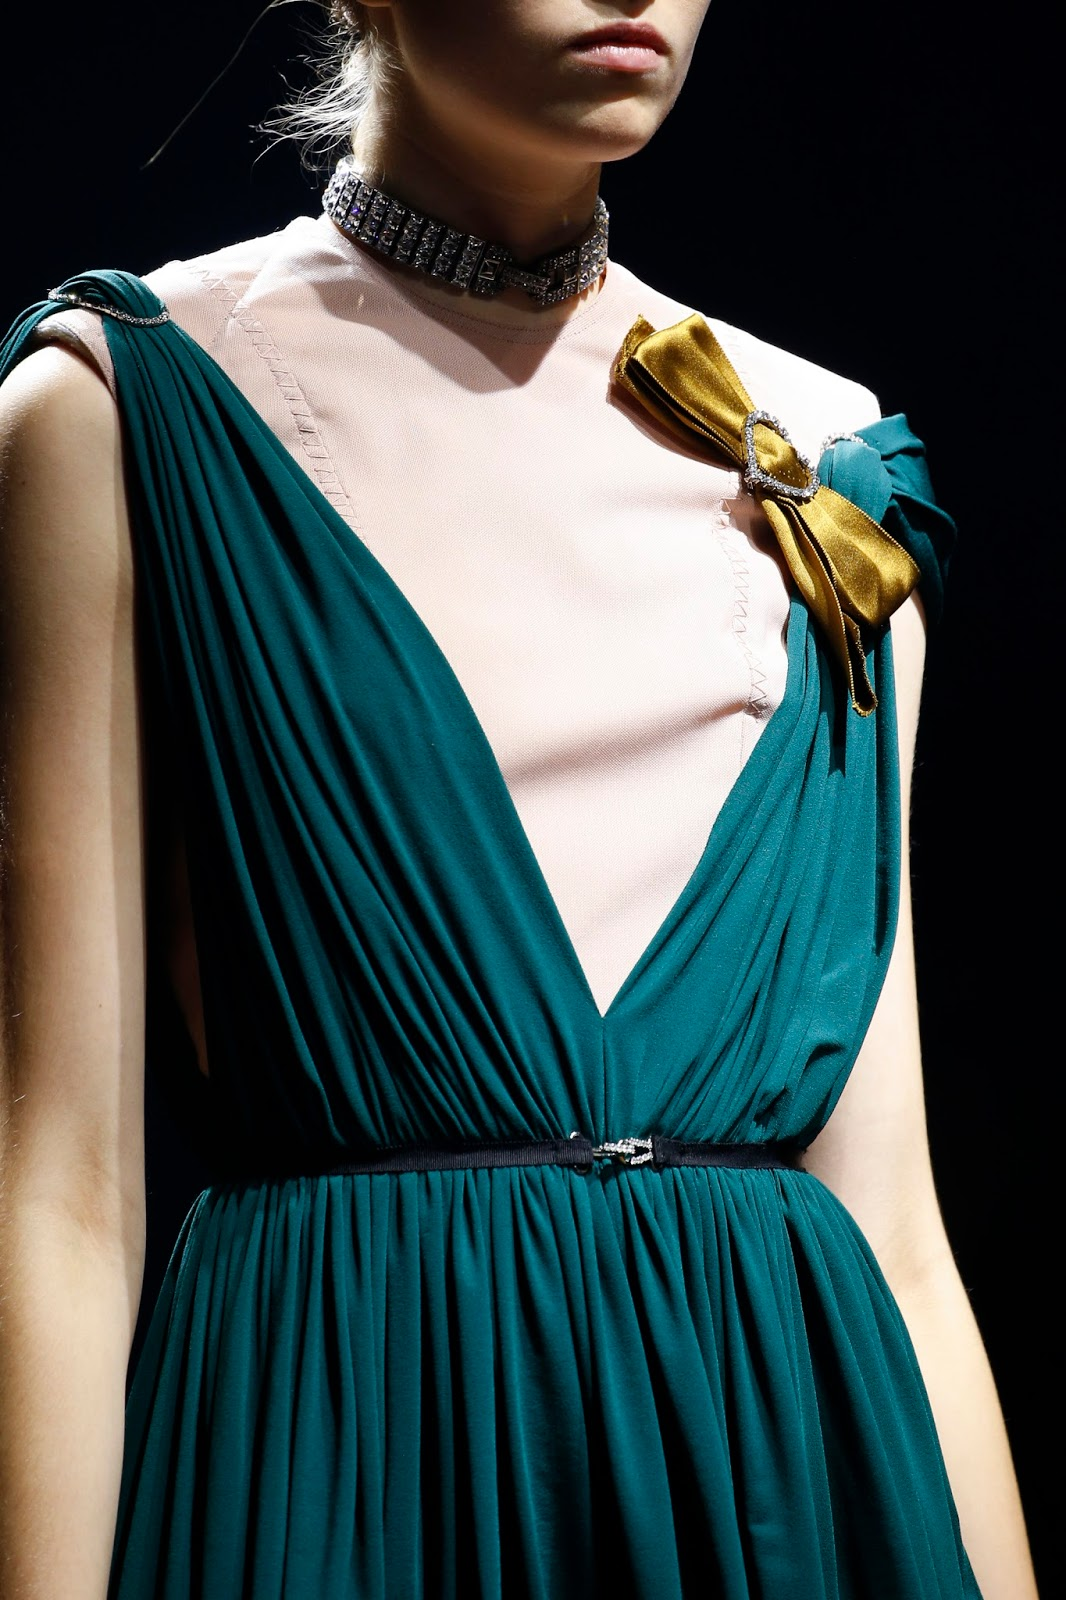 Spring/Summer 2016 trend report / Lanvin SS16 / ribbons & bows via www.fashionedbylove.co.uk